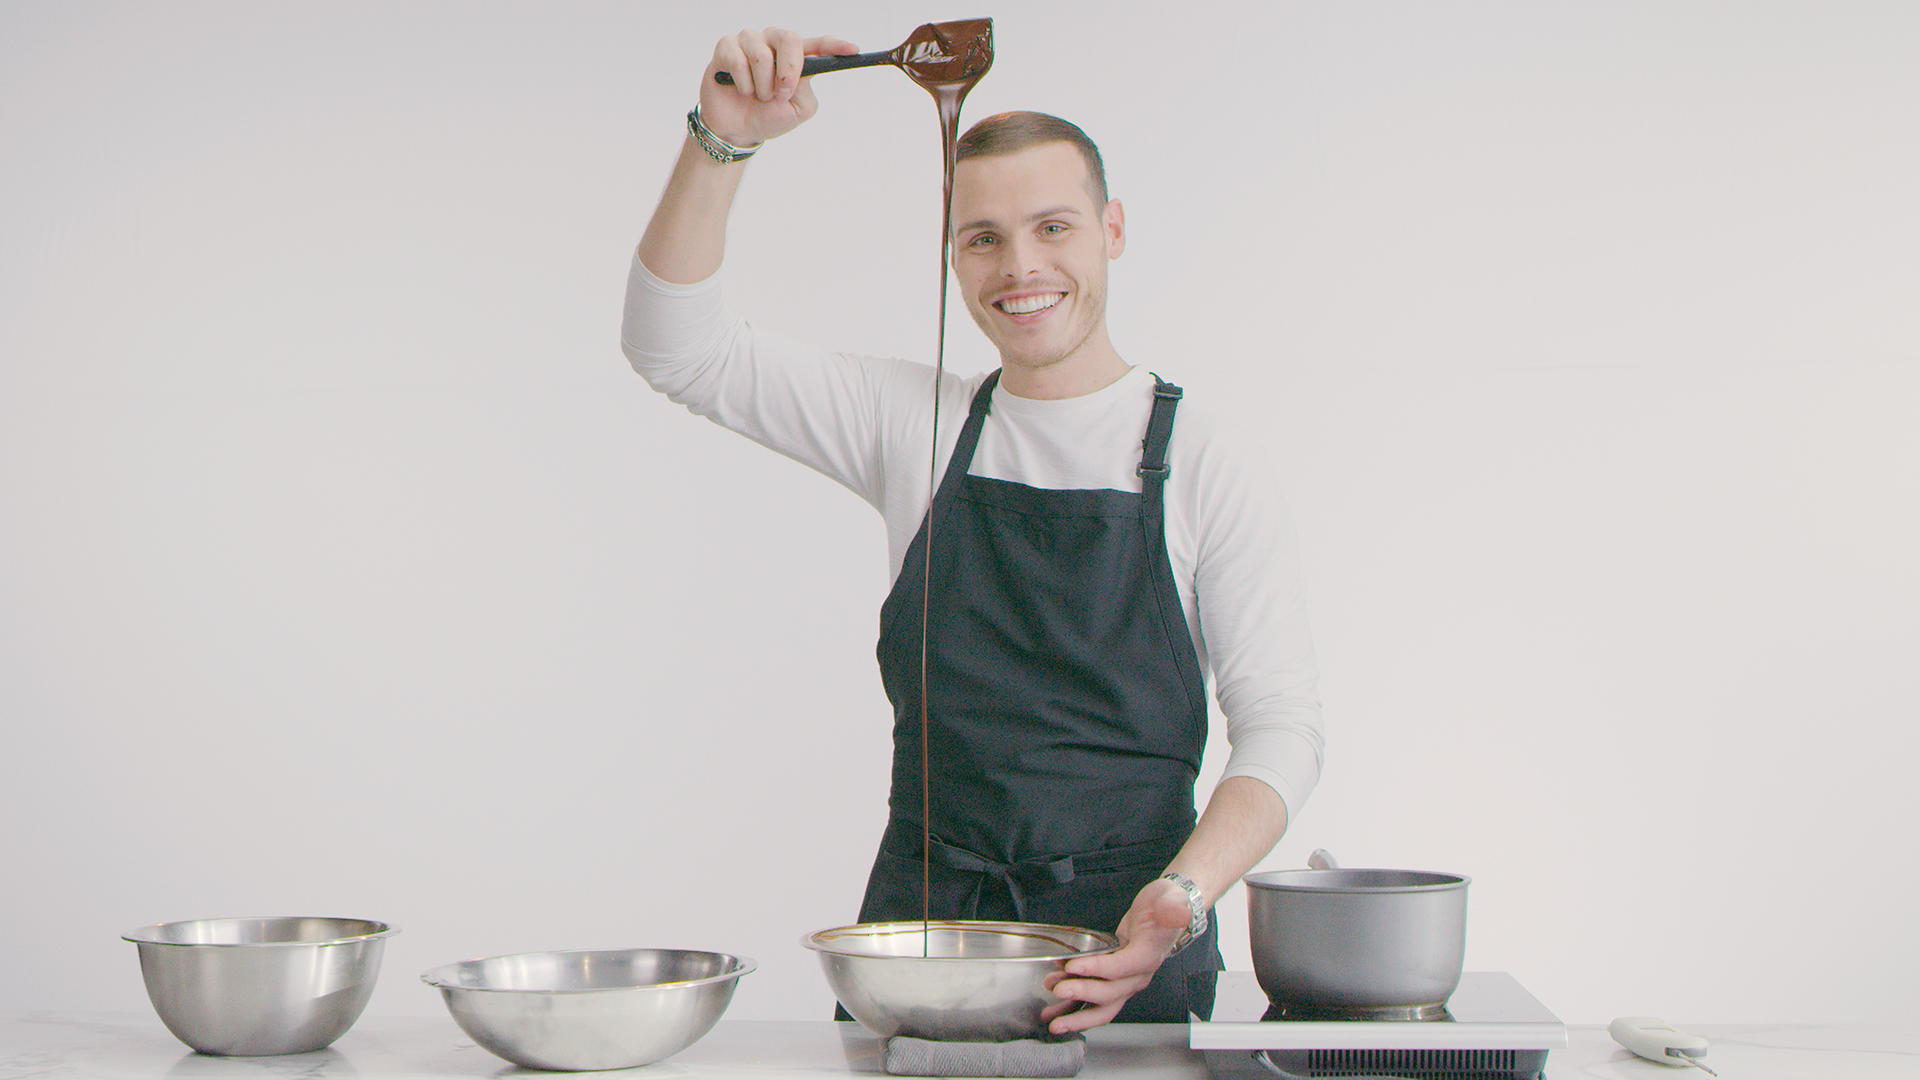 A man working with melted chocolate